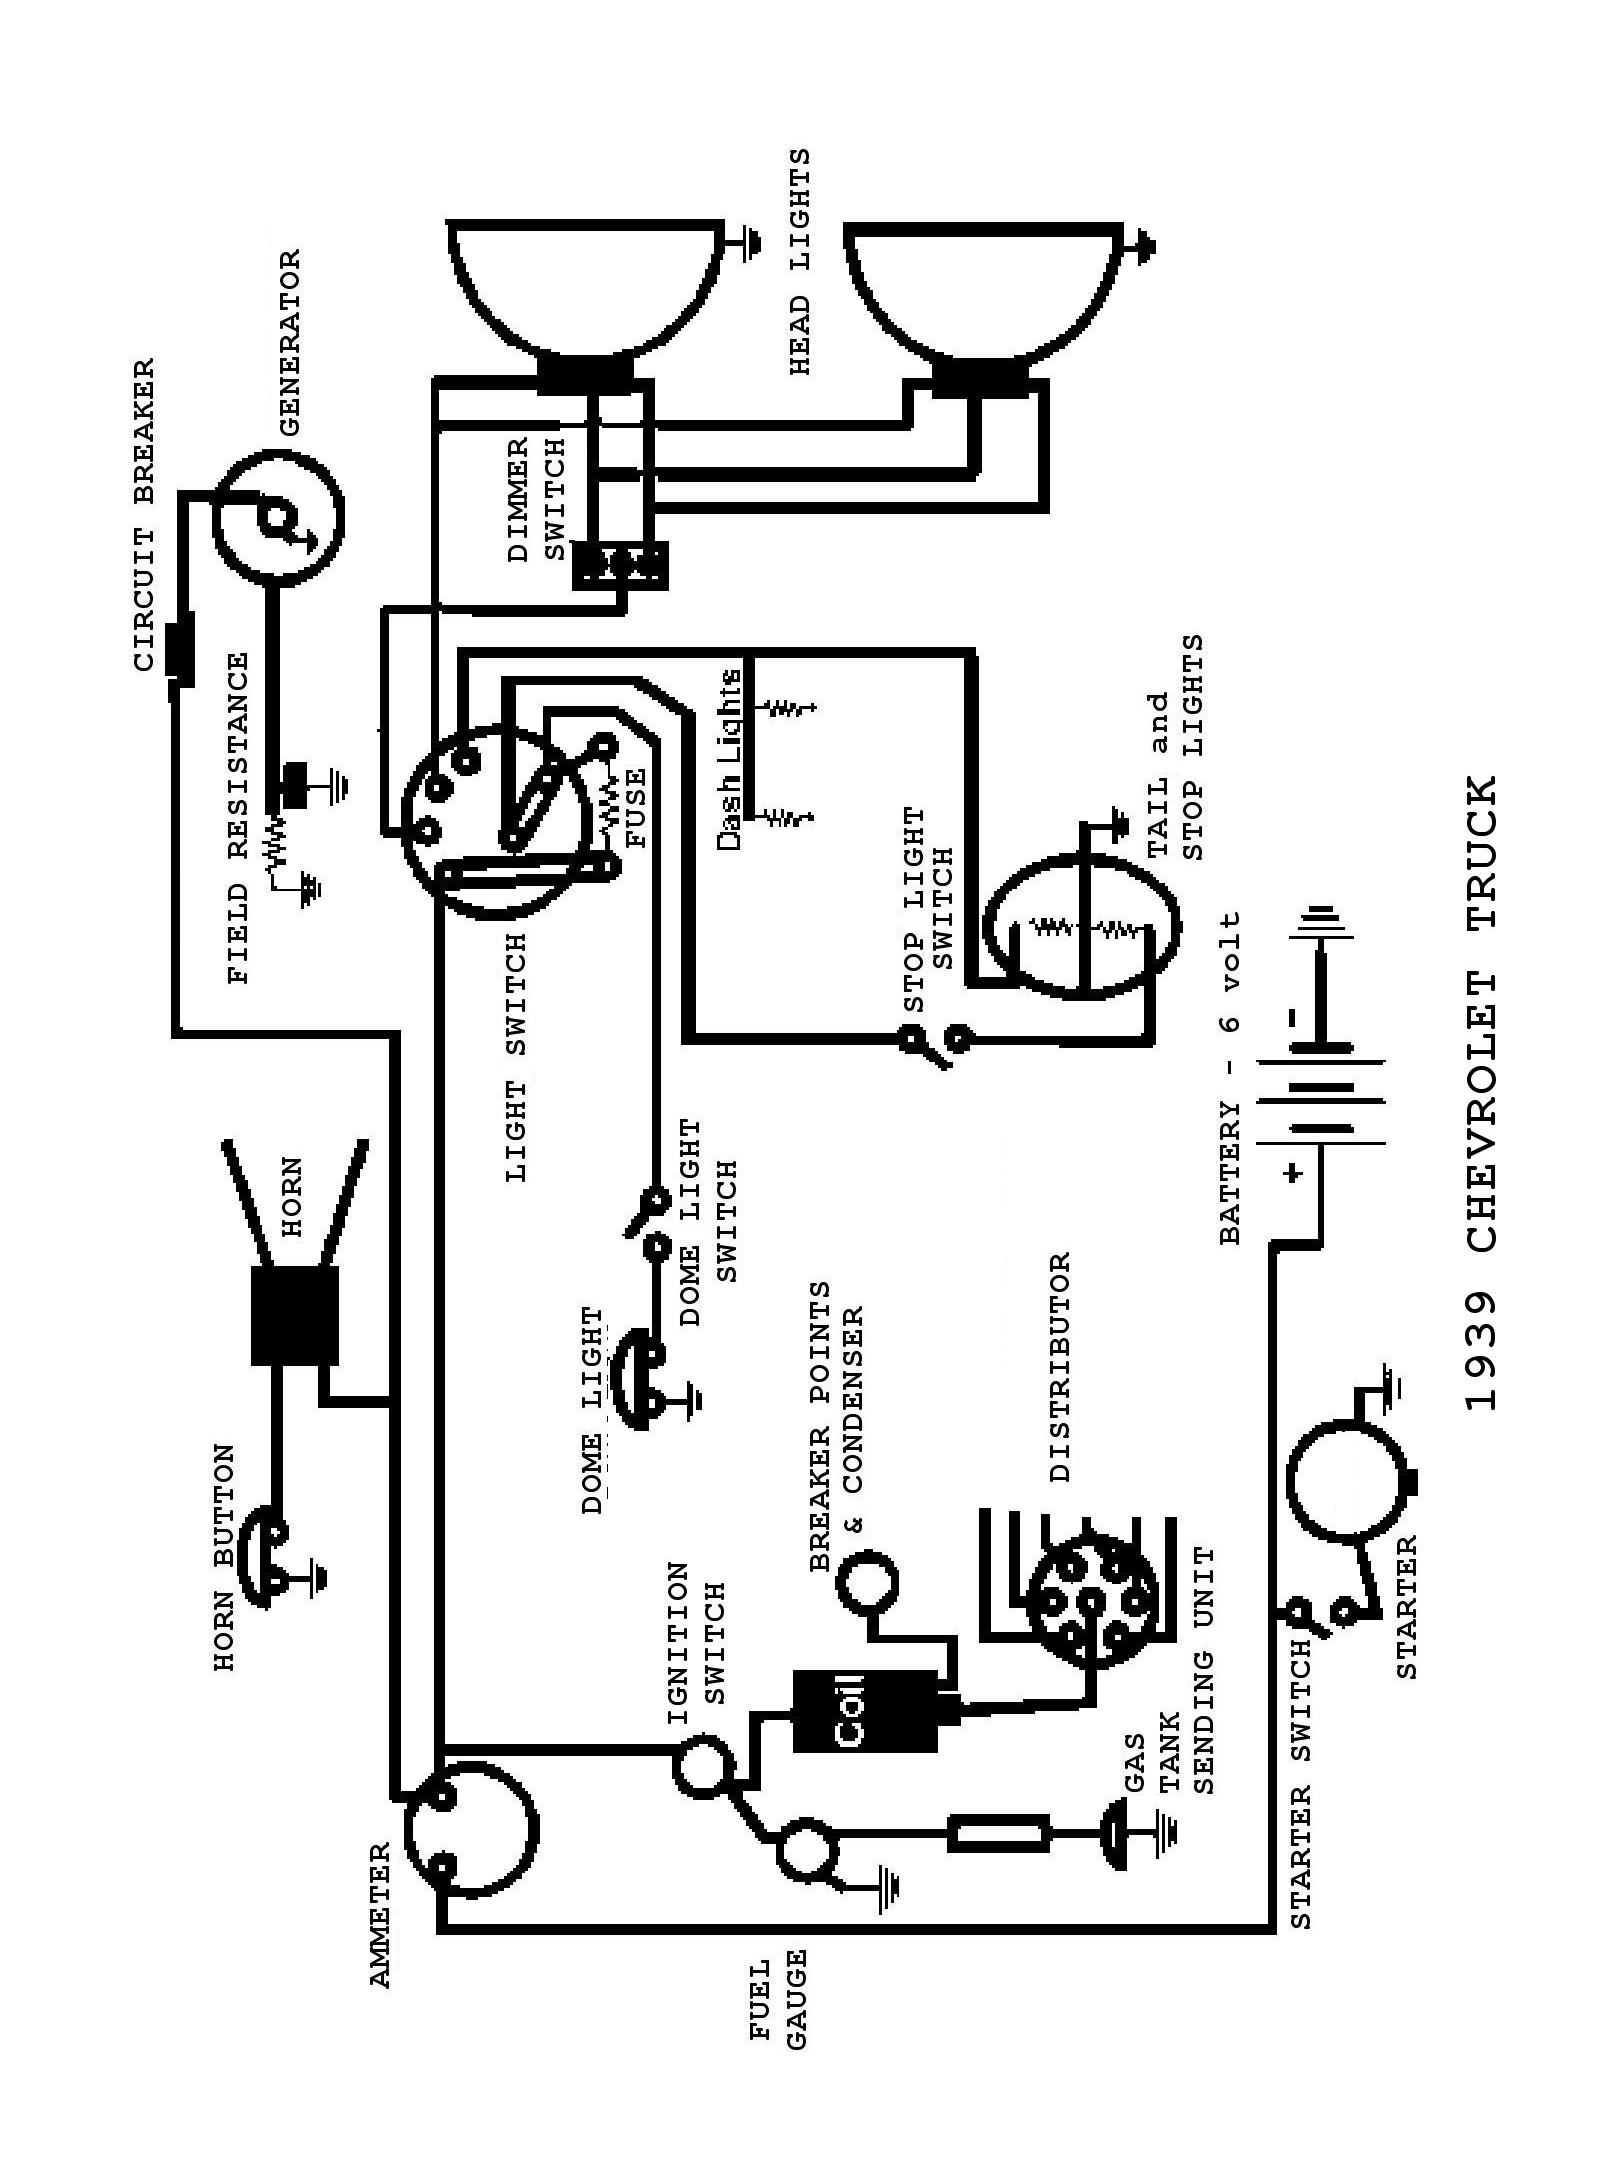 31 Ford Generator Wiring Wire Data Schema 1950 8n Tractor Diagram 6 Volt Besides 12 1931 Model A Light Get Free 9n